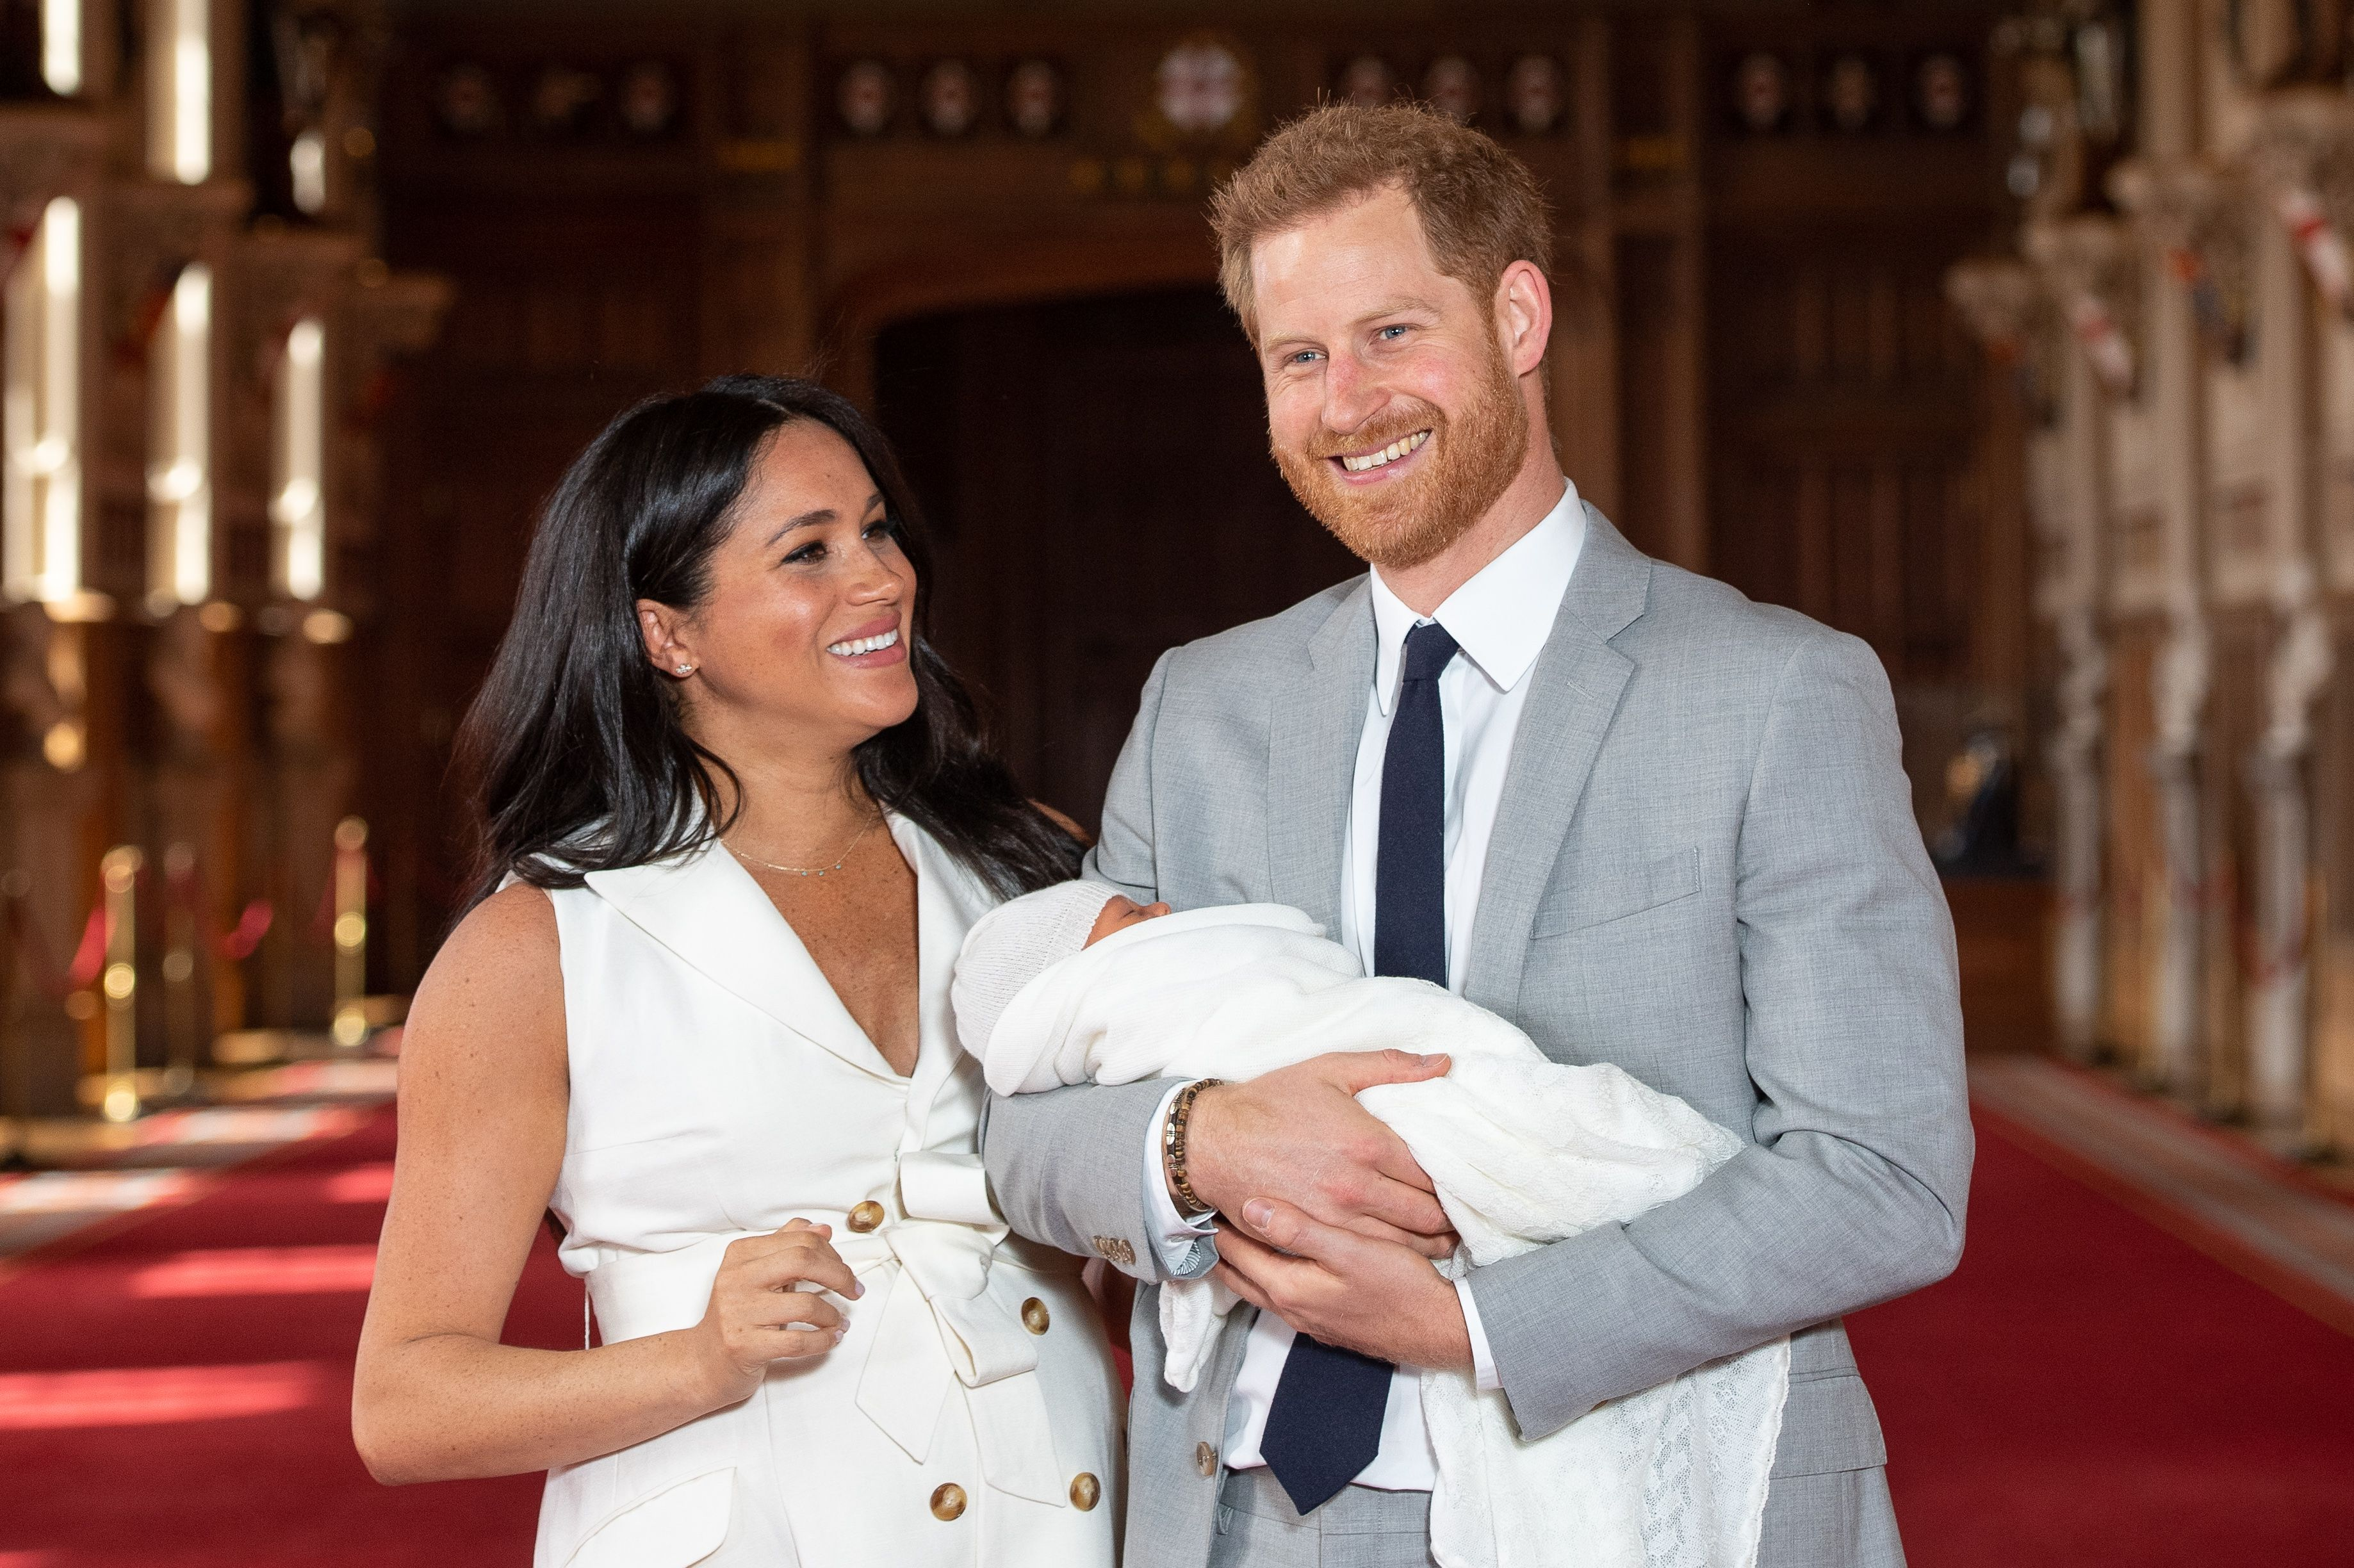 Prince Harry and Duchess Meghan Announce the Name of Their Non-Profit Organization, Archewell